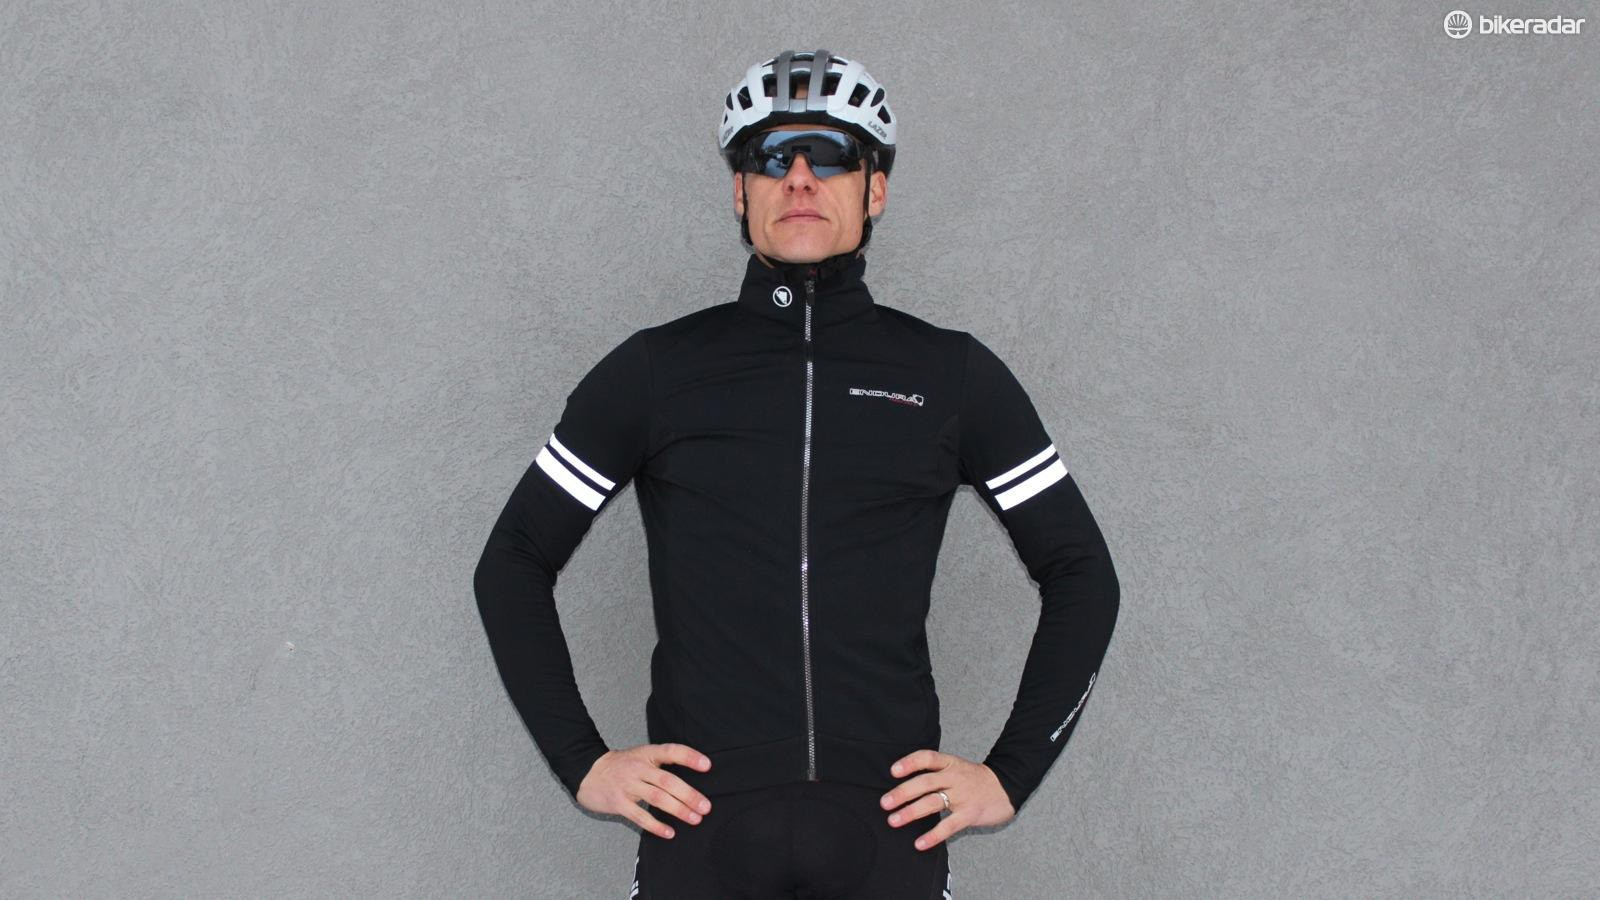 Endura's FS260-Pro SL Thermal Windproof Jacket fits snugly with good stretch